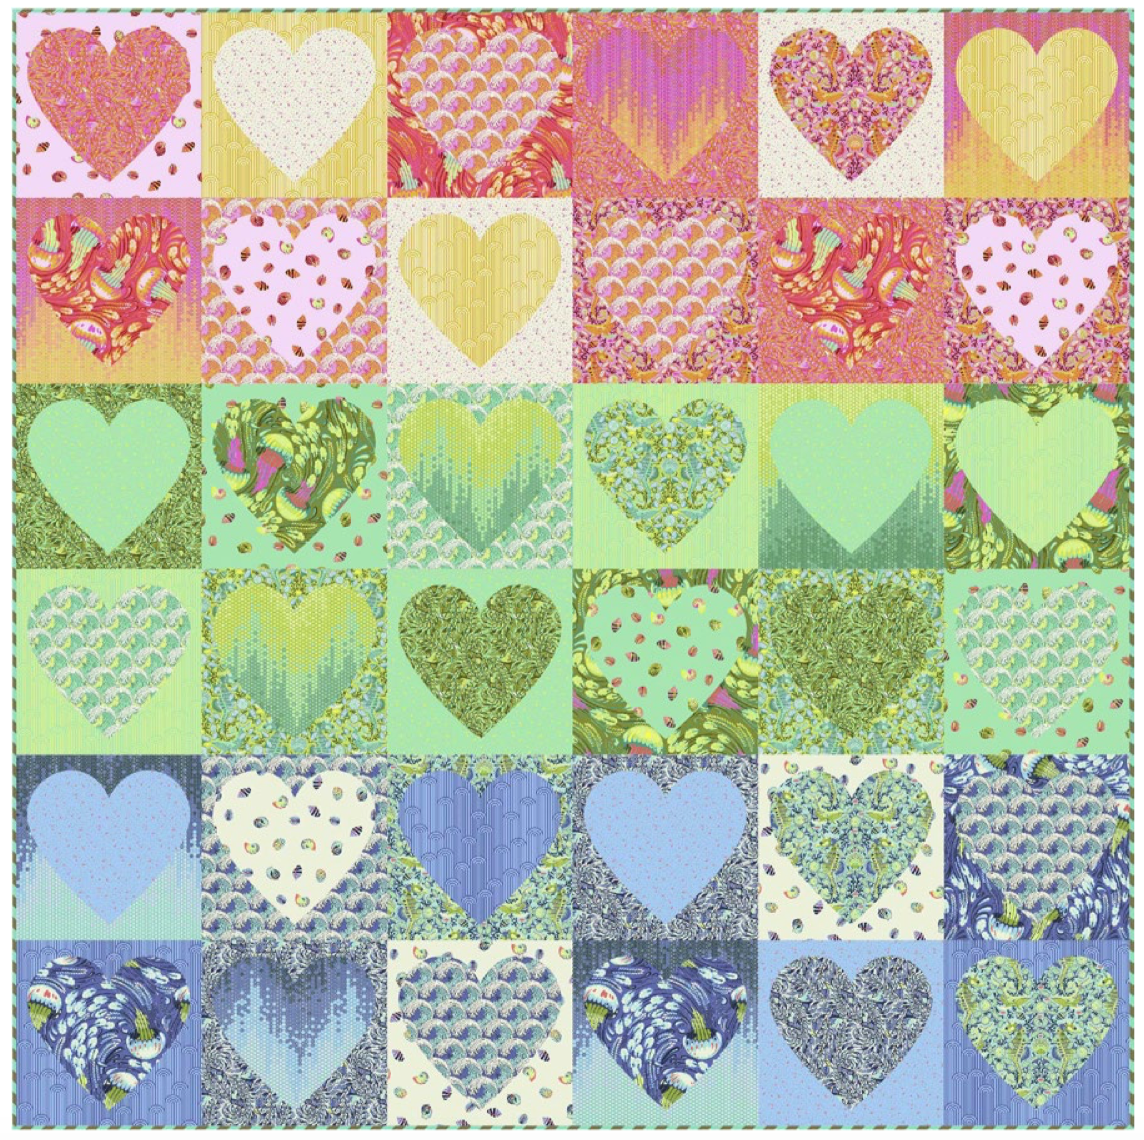 Faded Hearts Quilt Kit in Zuma